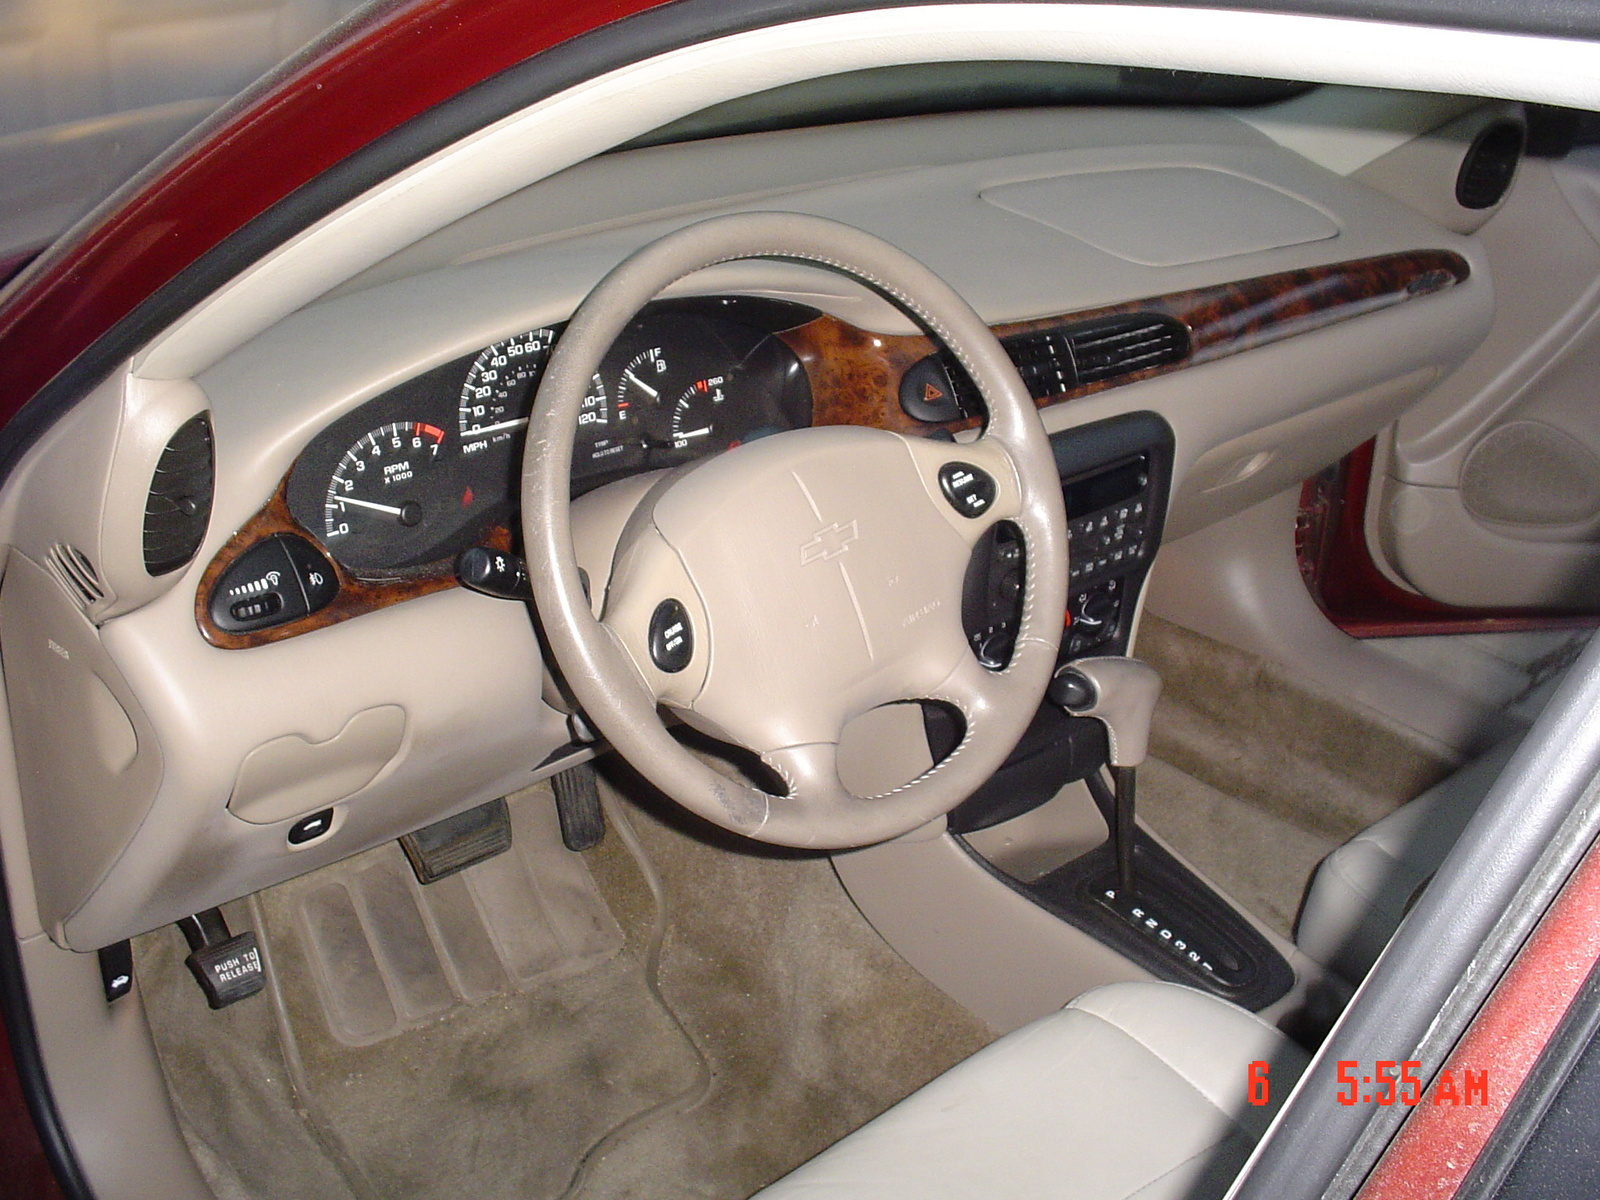 2003 chevrolet malibu interior pictures cargurus. Black Bedroom Furniture Sets. Home Design Ideas